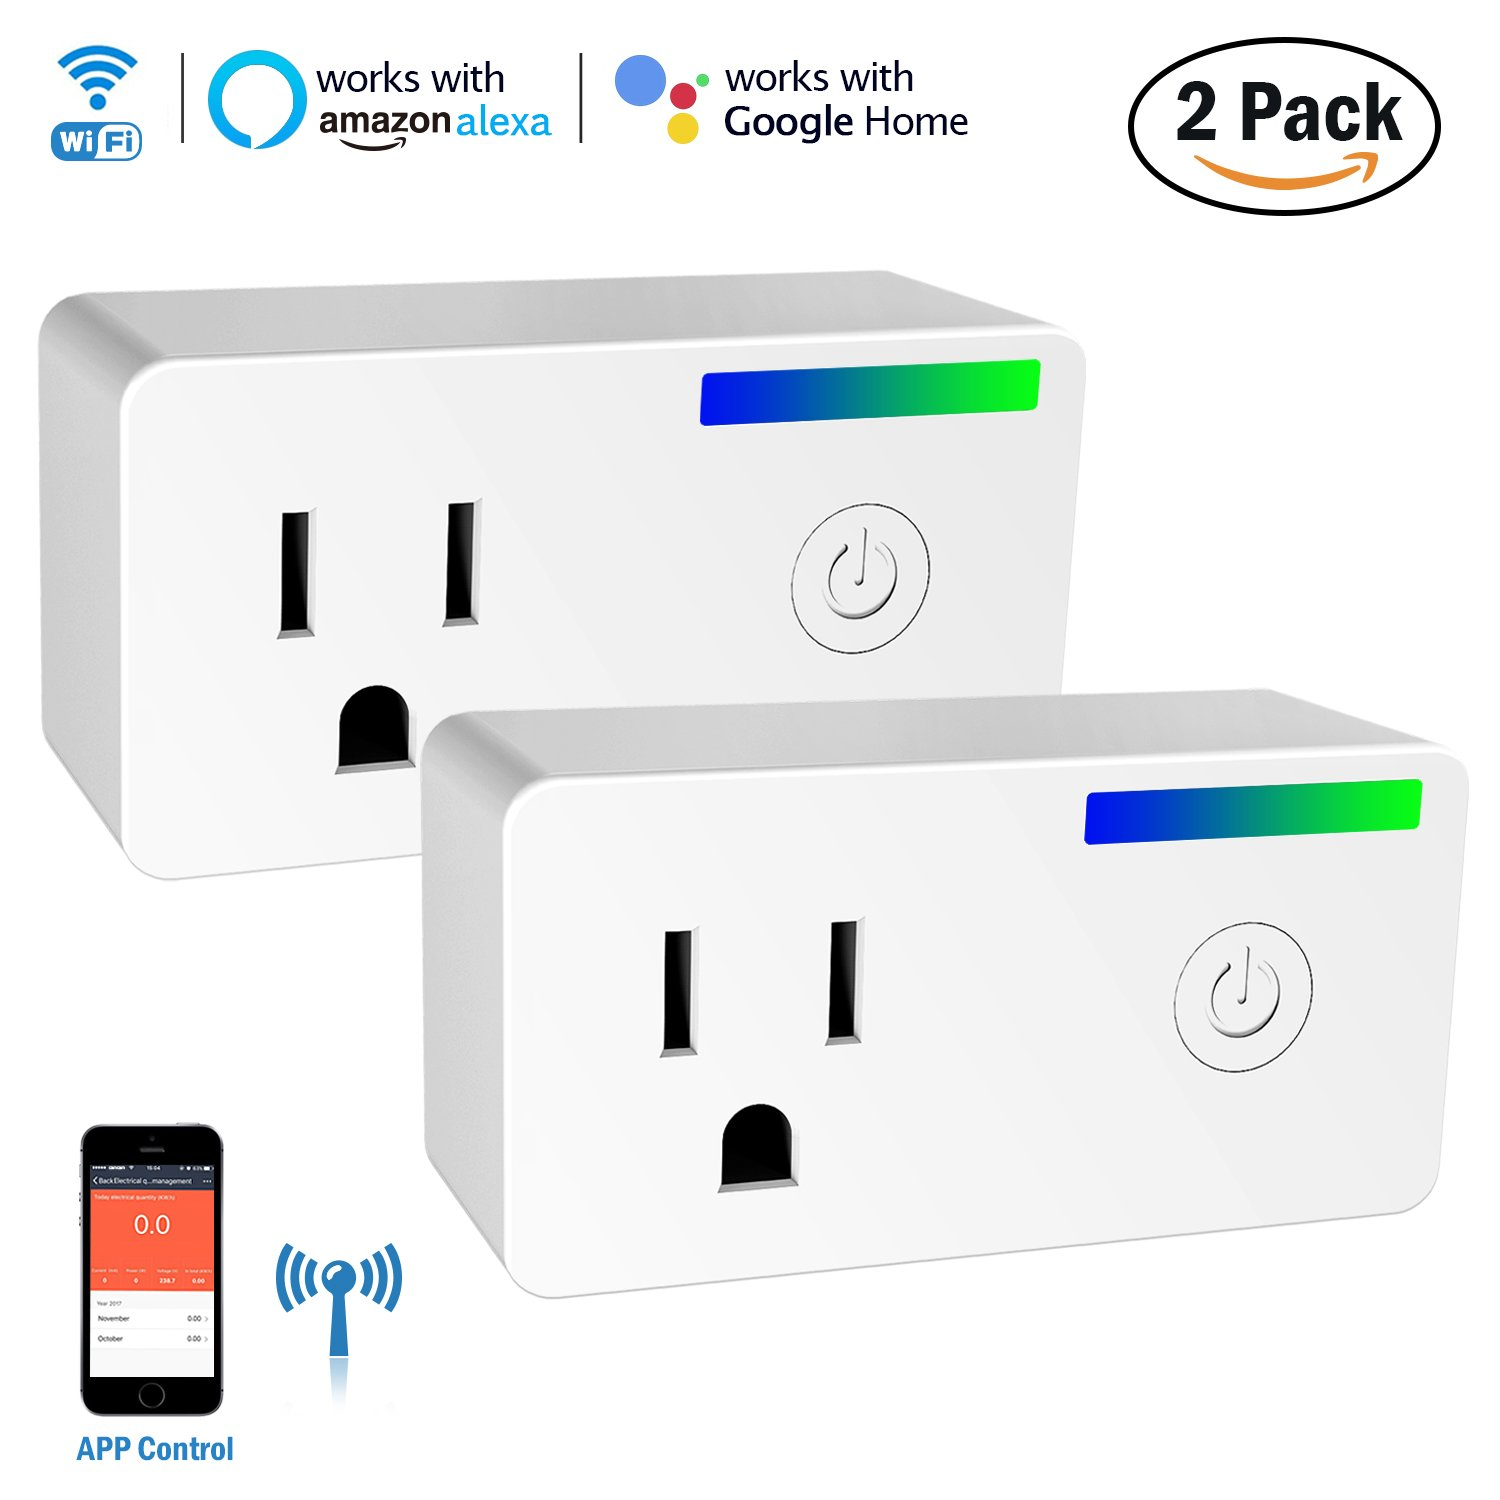 Wi-Fi Smart Plug, Esolom Mini Socket Outlet with Energy Monitoring, Compatible with Alexa and Google Home Assistant, Remote APP Control Power Switch Smart Timer Plug, No Hub Required (2 Pack)